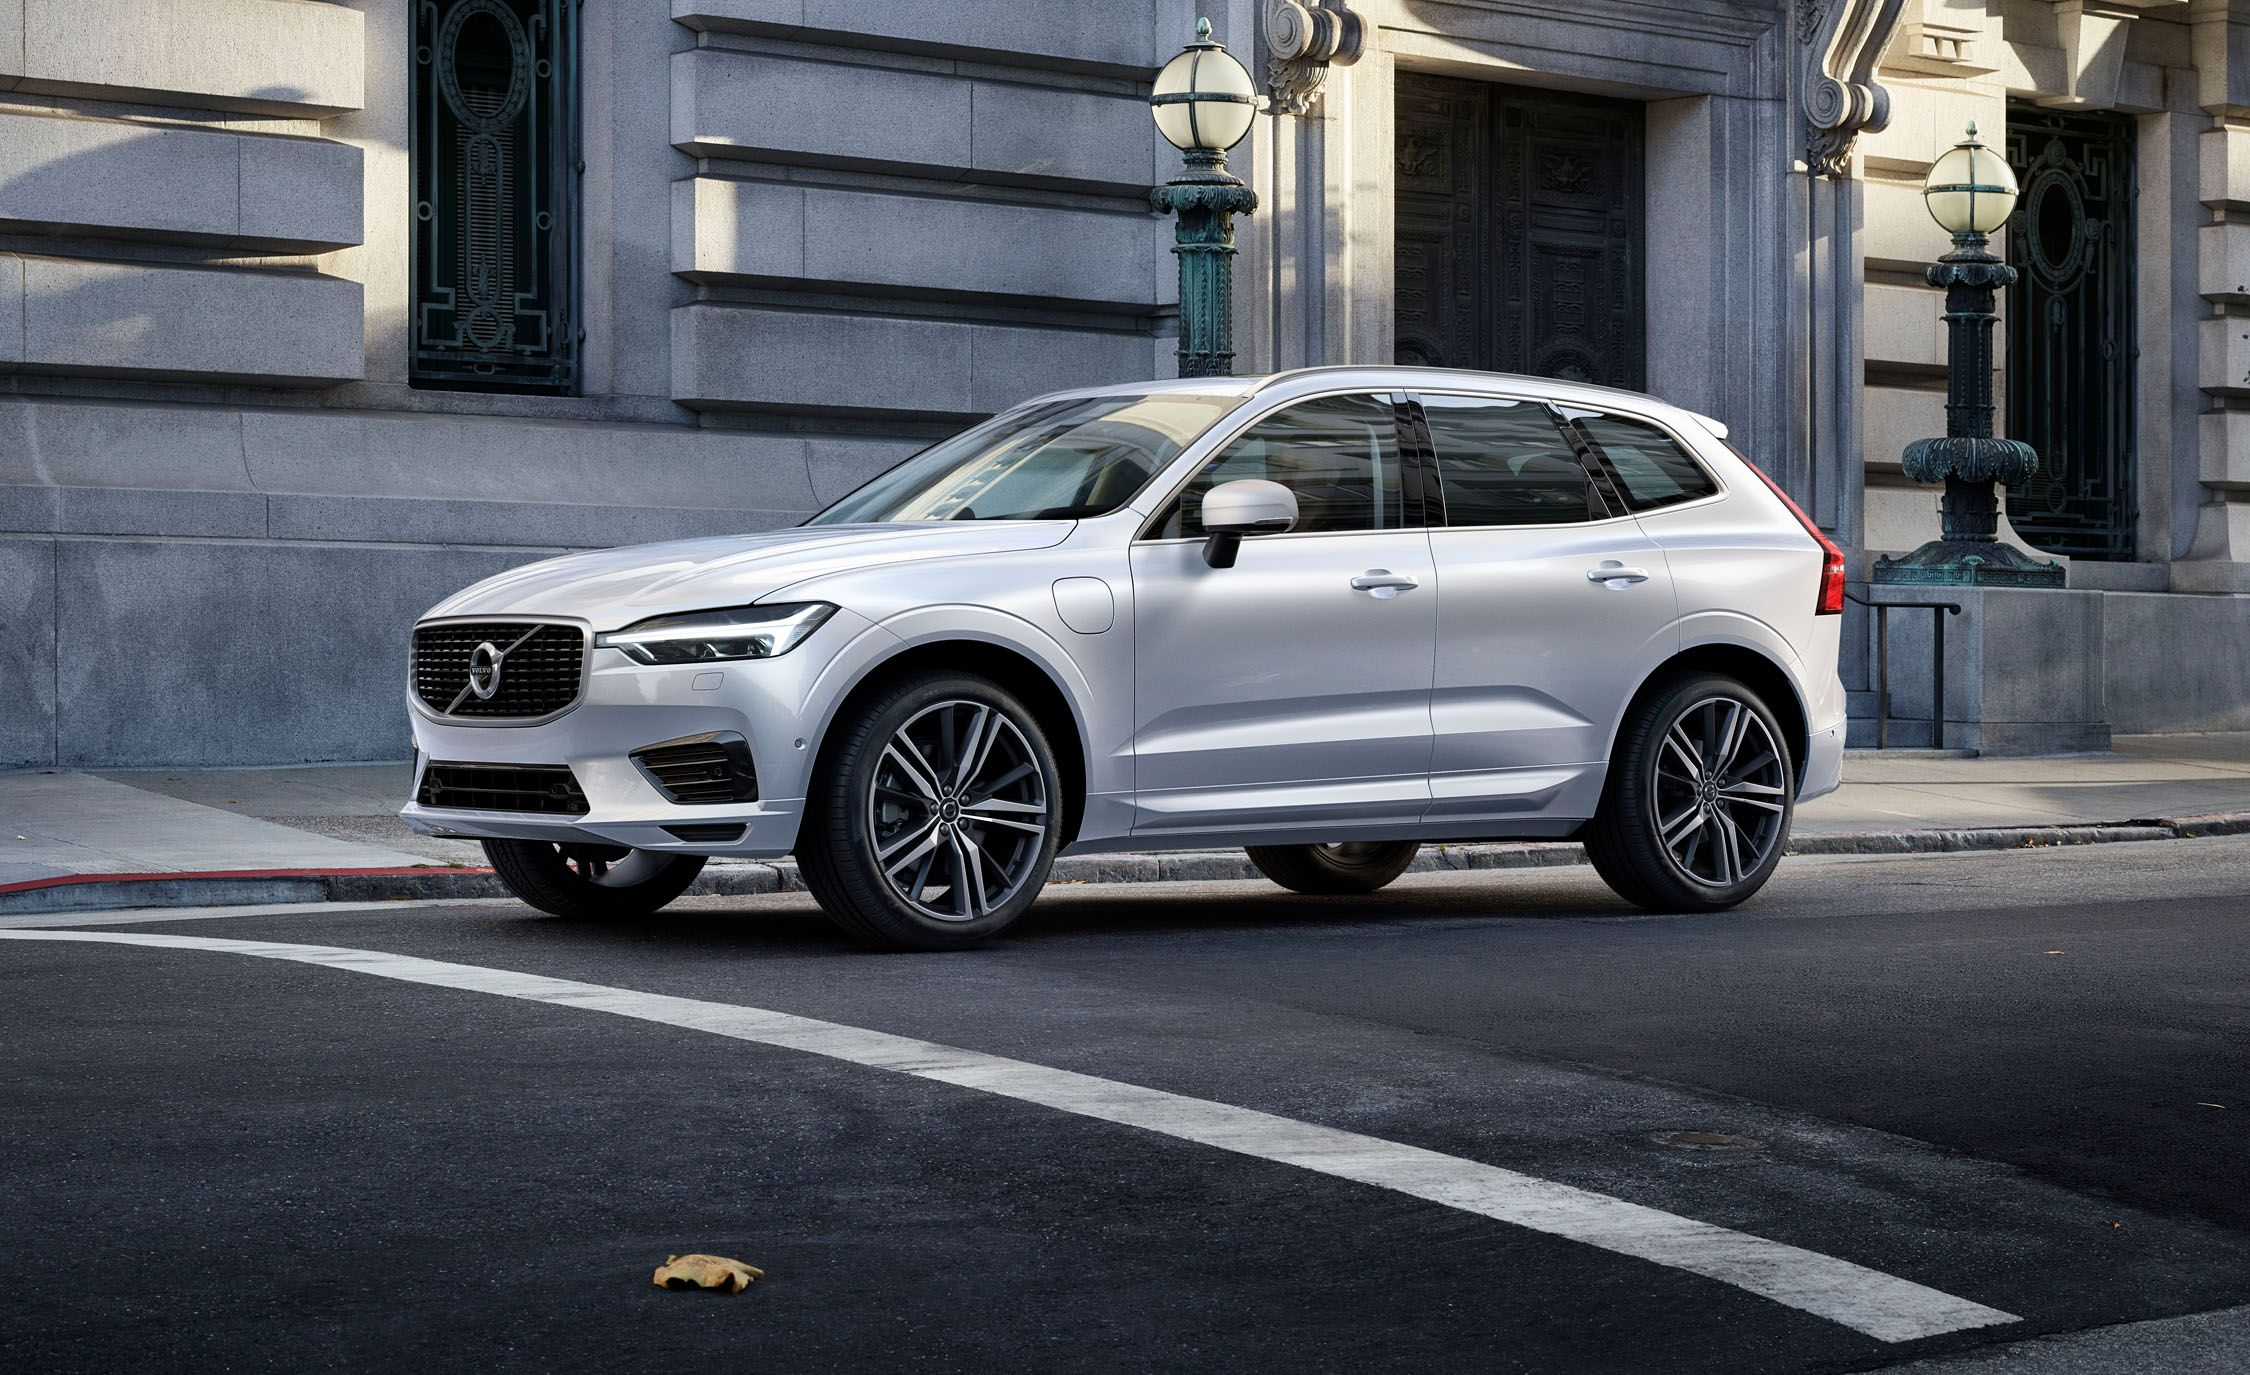 car awd r volvo geartronic driven drive pro review first hybrid top gear reviews side design